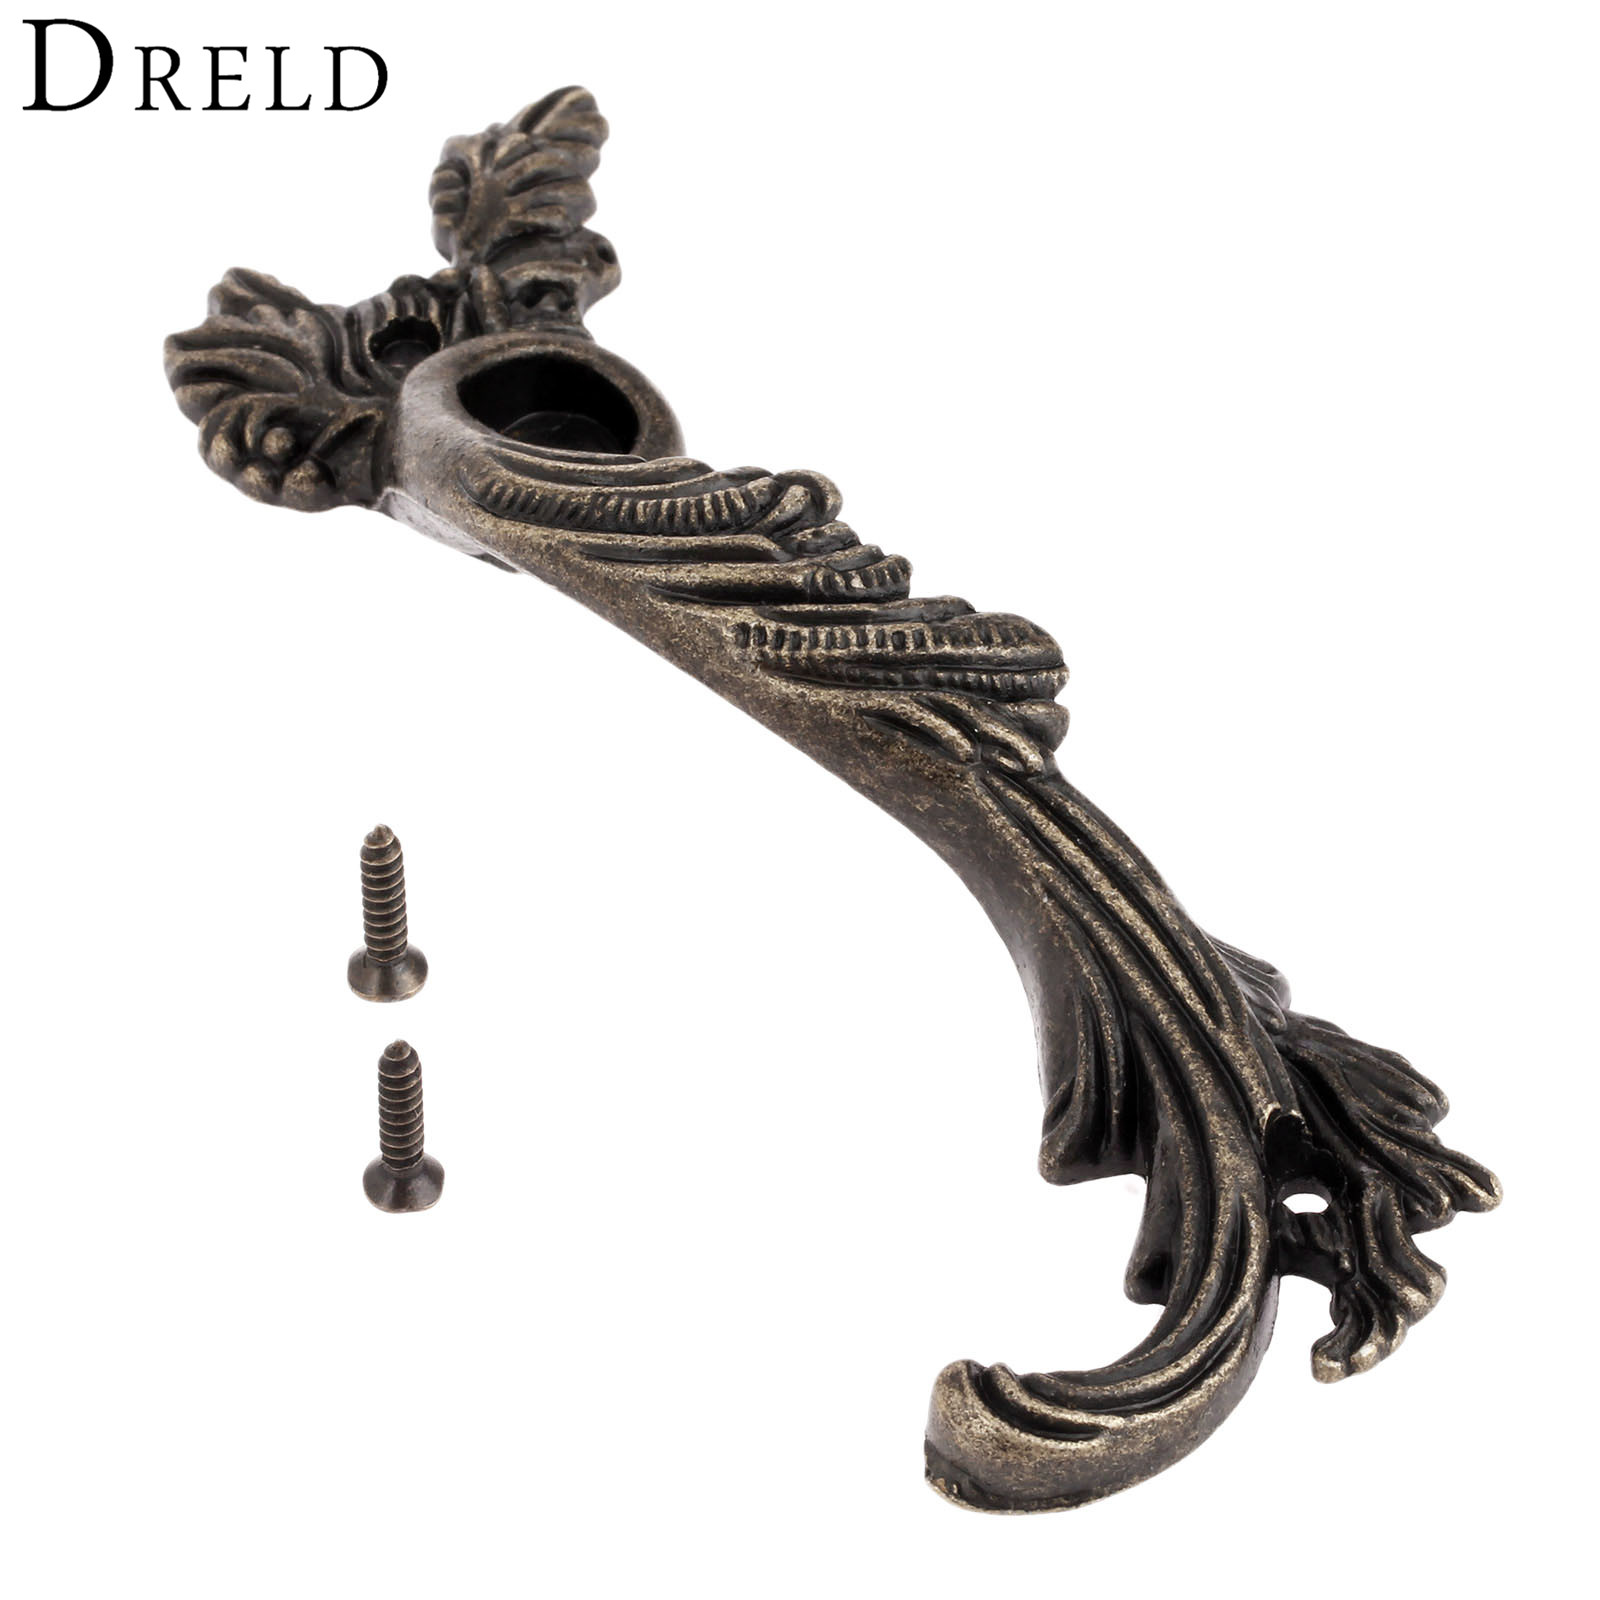 DRELD 1Pc Antique Furniture Handle Cabinet Knobs and Handles Drawer Kitchen Cupboard Vintage Pull Handle Furniture Fittings 98mm dreld 1pc furniture handles wardrobe door pull drawer handle kitchen cupboard handle cabinet knobs and handles decorative knob